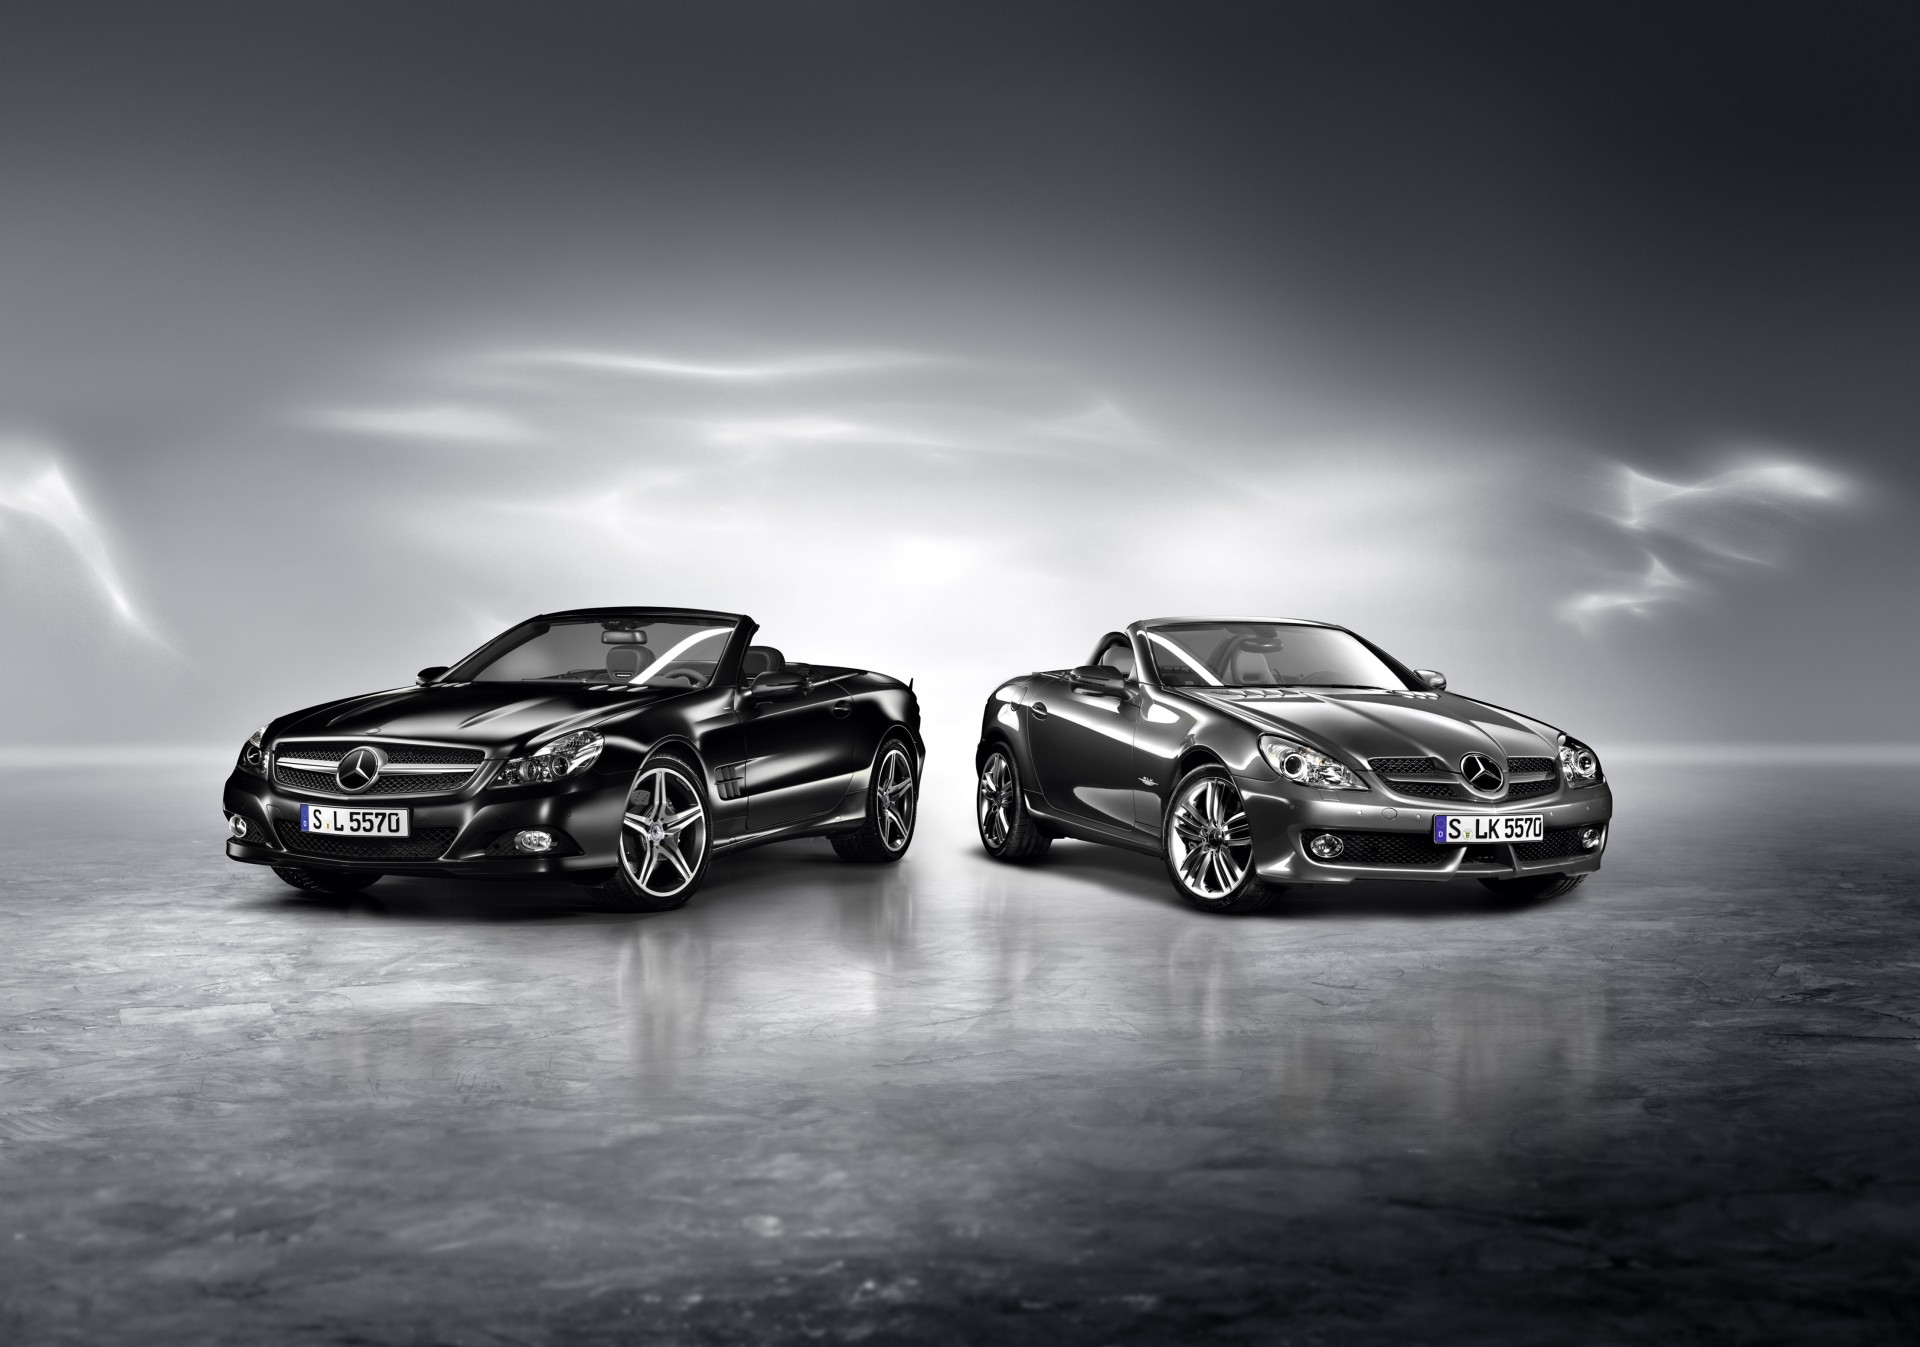 mercedes-benz sl night edition slk grand edition